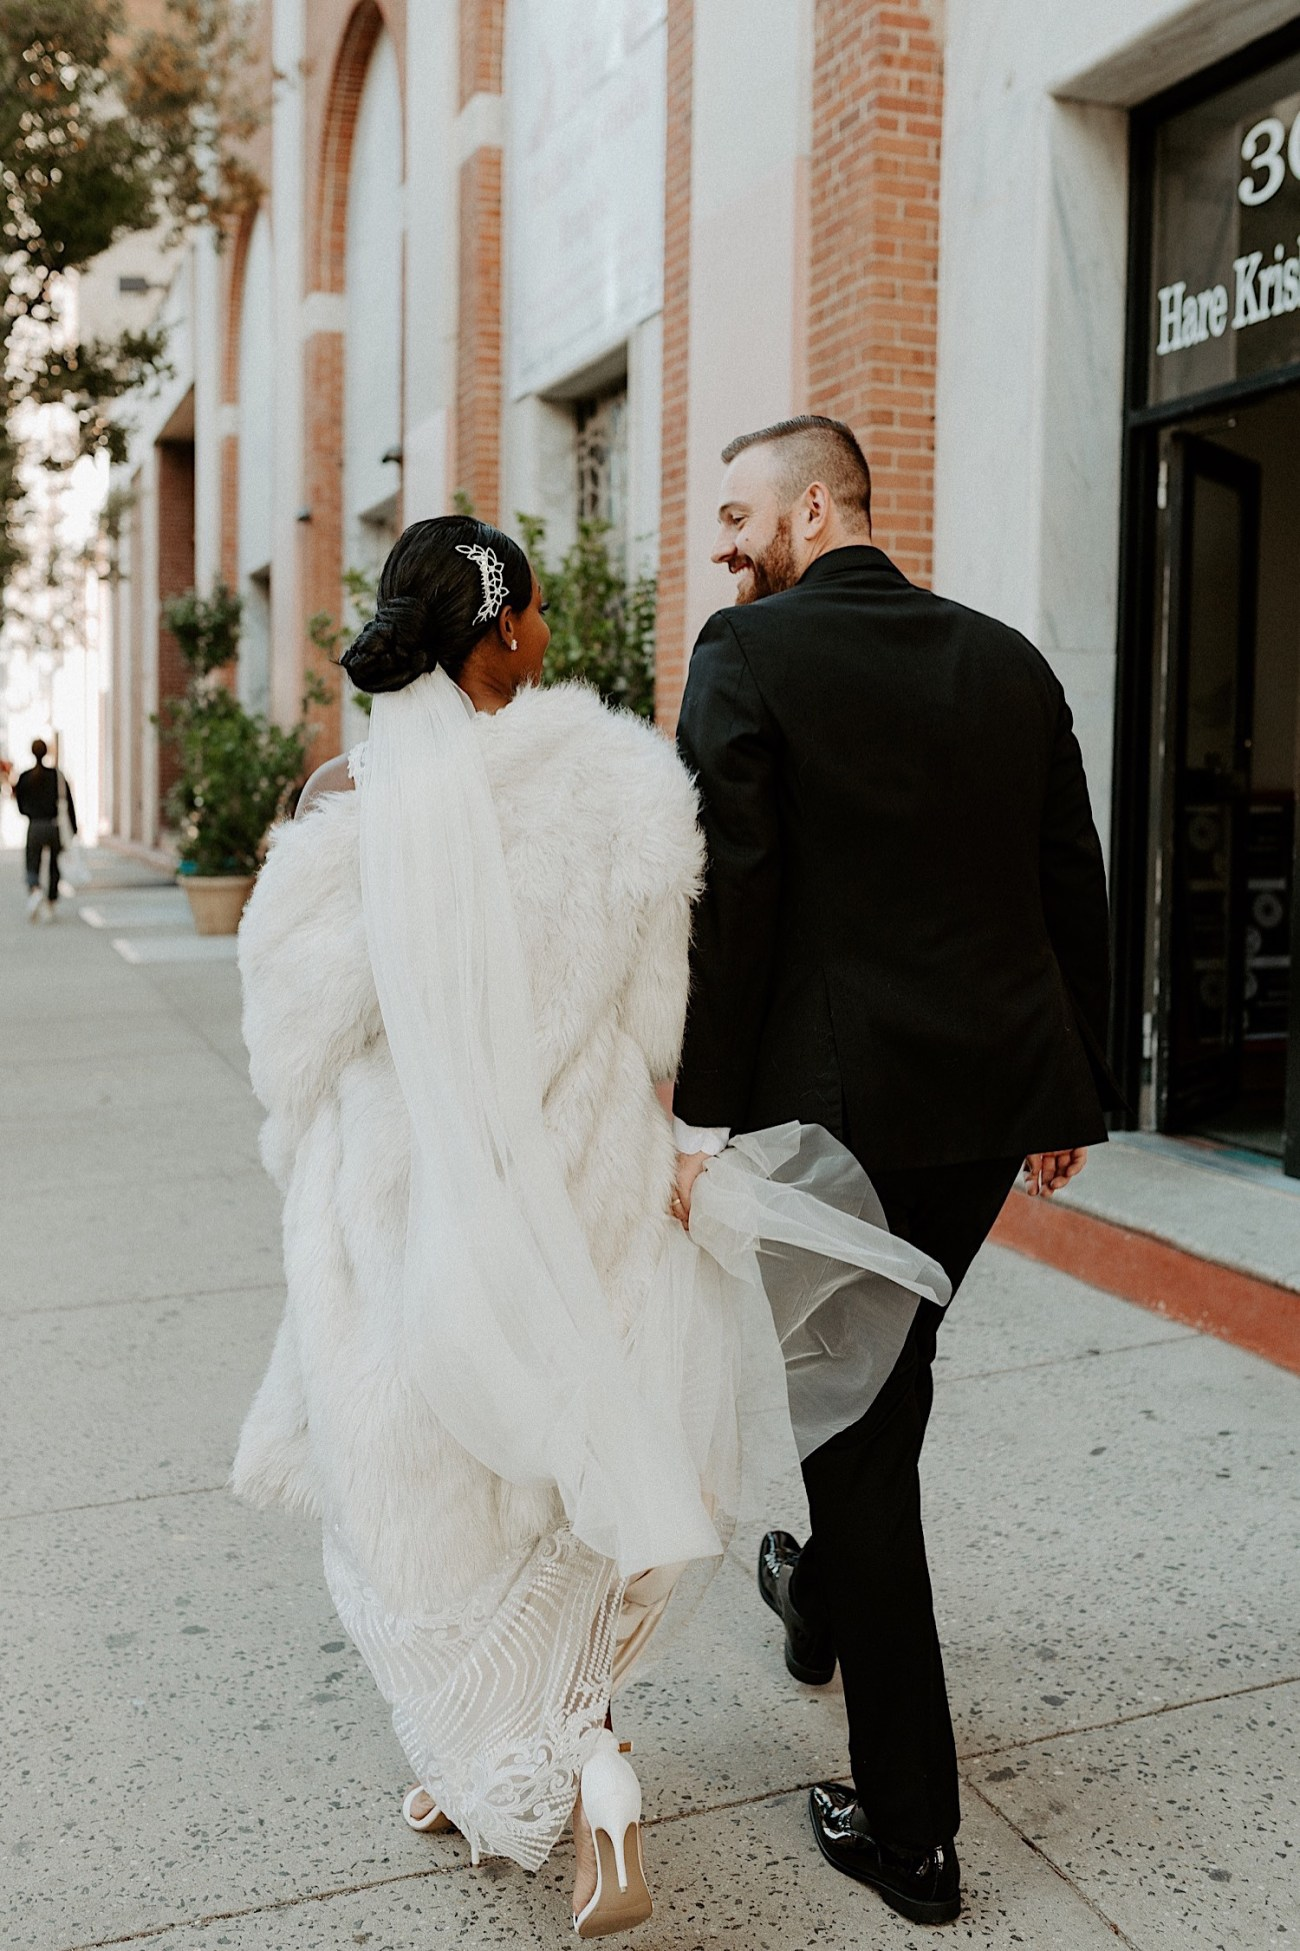 Brooklyn Dumbo Elopement NYC Wedding Photographer New York Elopement 09